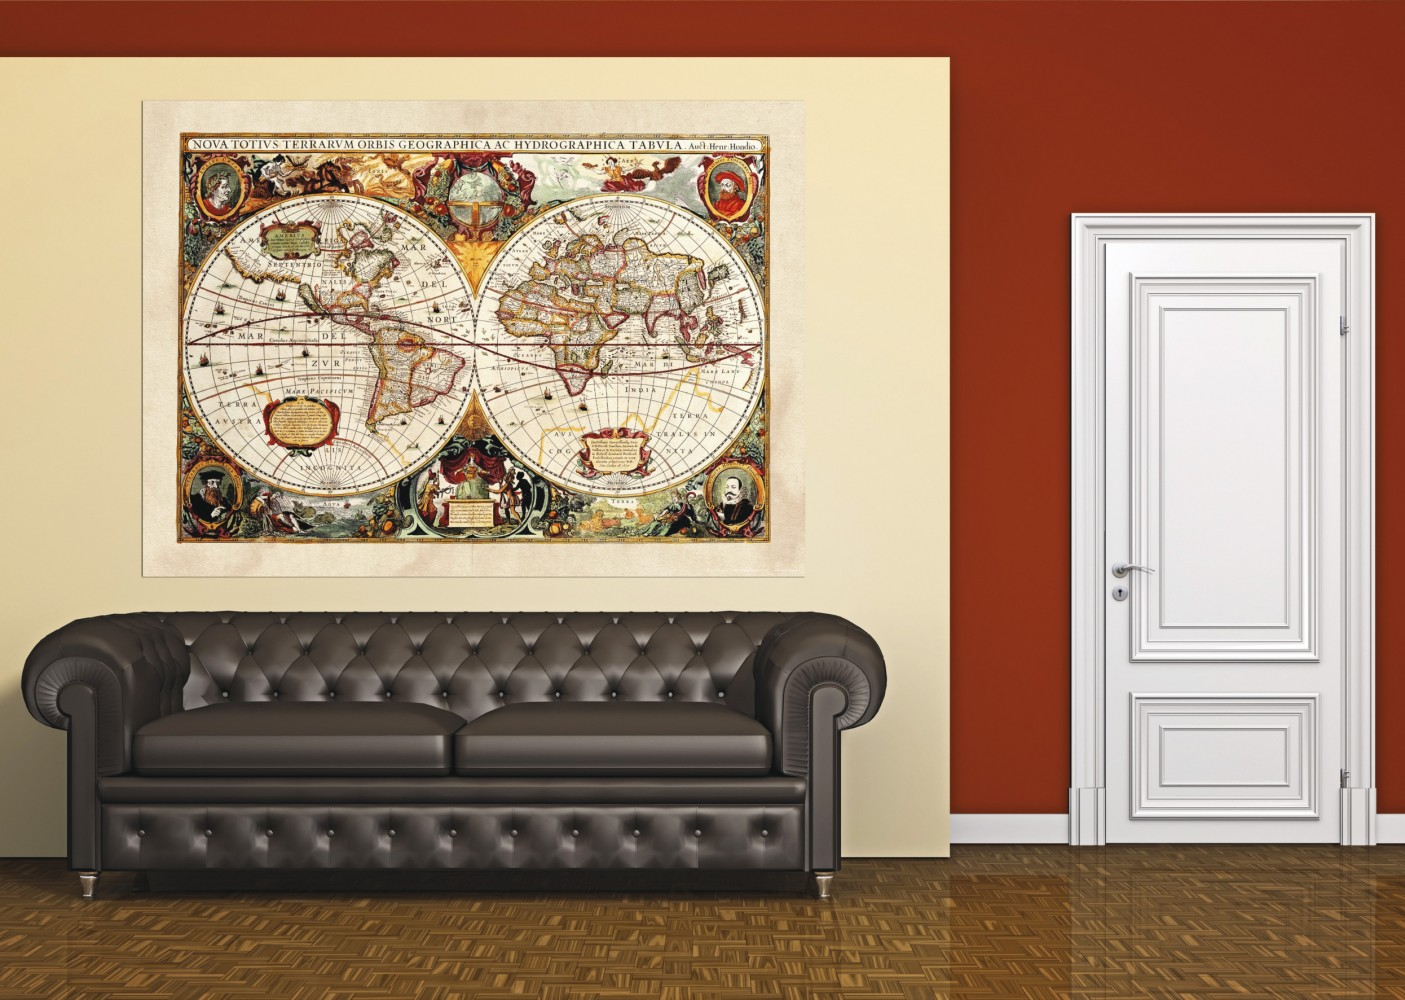 xxl poster fototapete tapete historische weltkarte geographie foto 160 cm x 115 cm. Black Bedroom Furniture Sets. Home Design Ideas